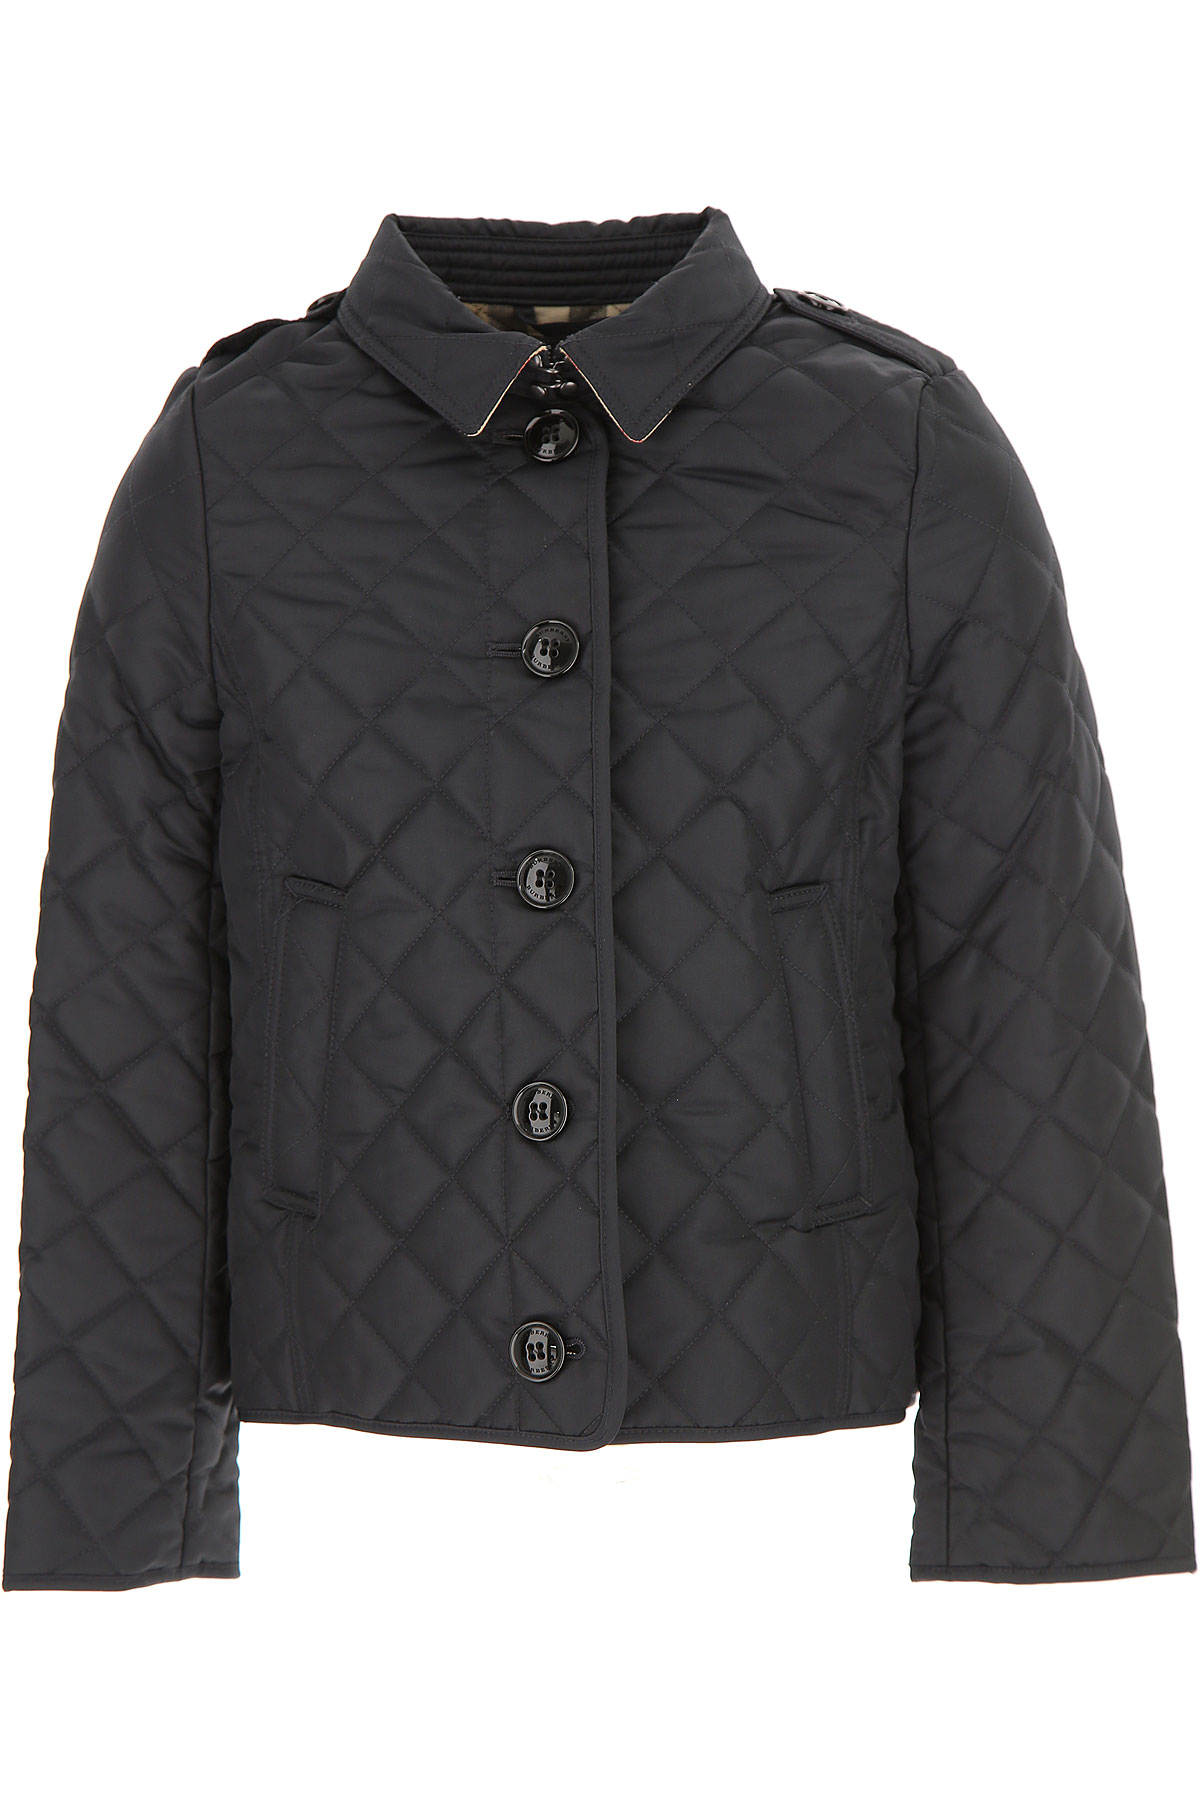 Image of Burberry Kids Jacket for Girls, Blue, polyester, 2017, 10Y 6Y 8Y